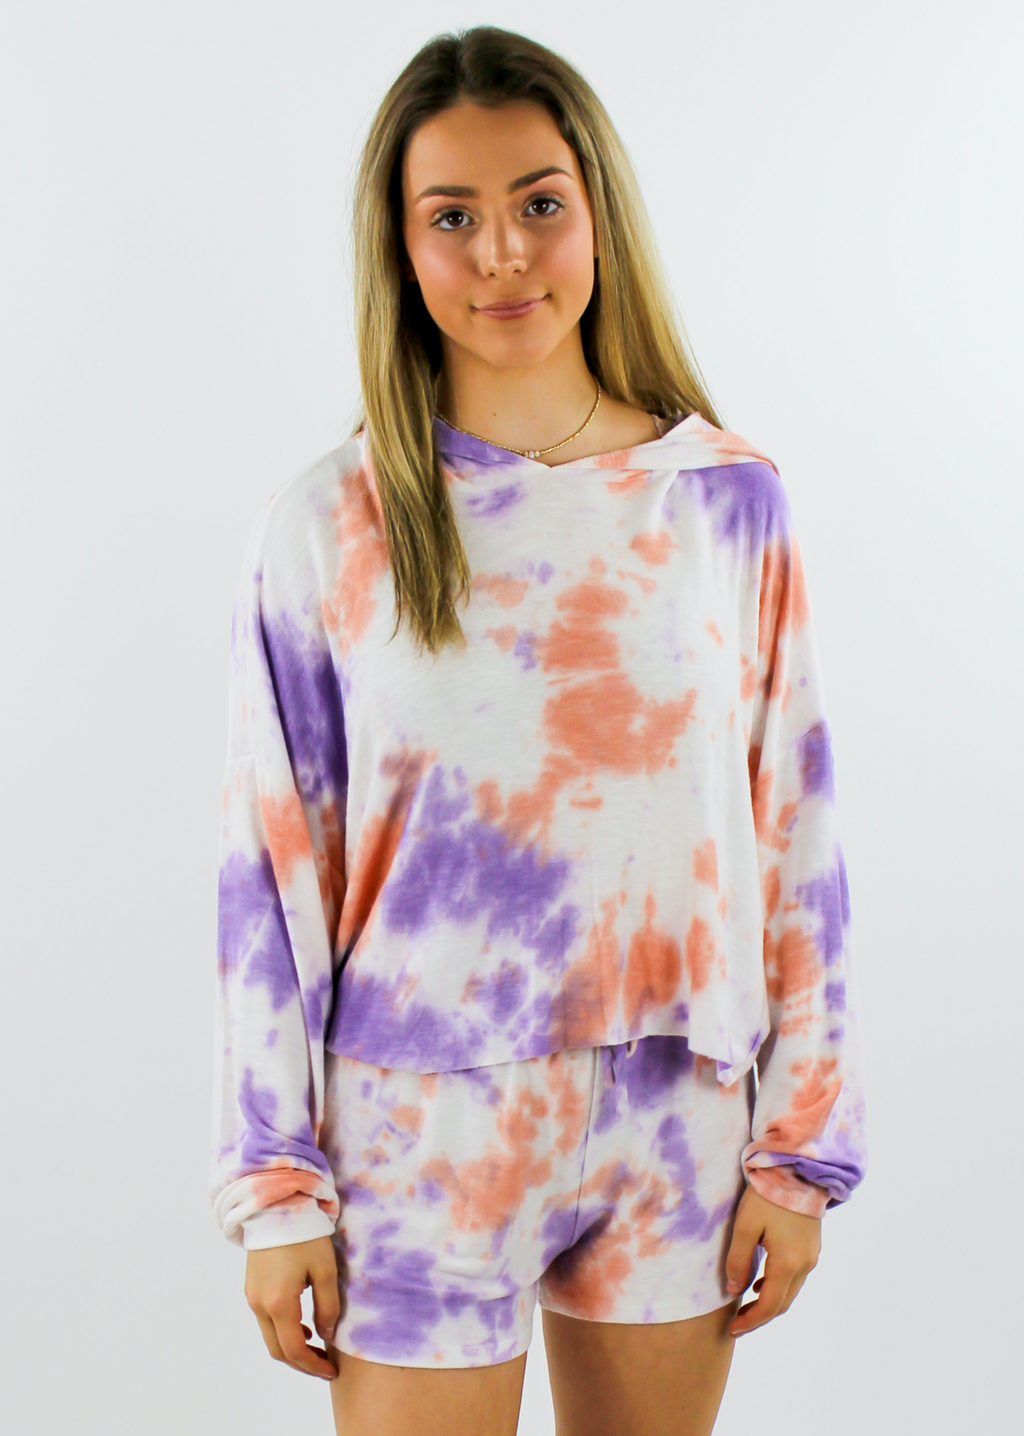 Into The Sunset Hoodie ★ Tie-Dye - Rock N Rags